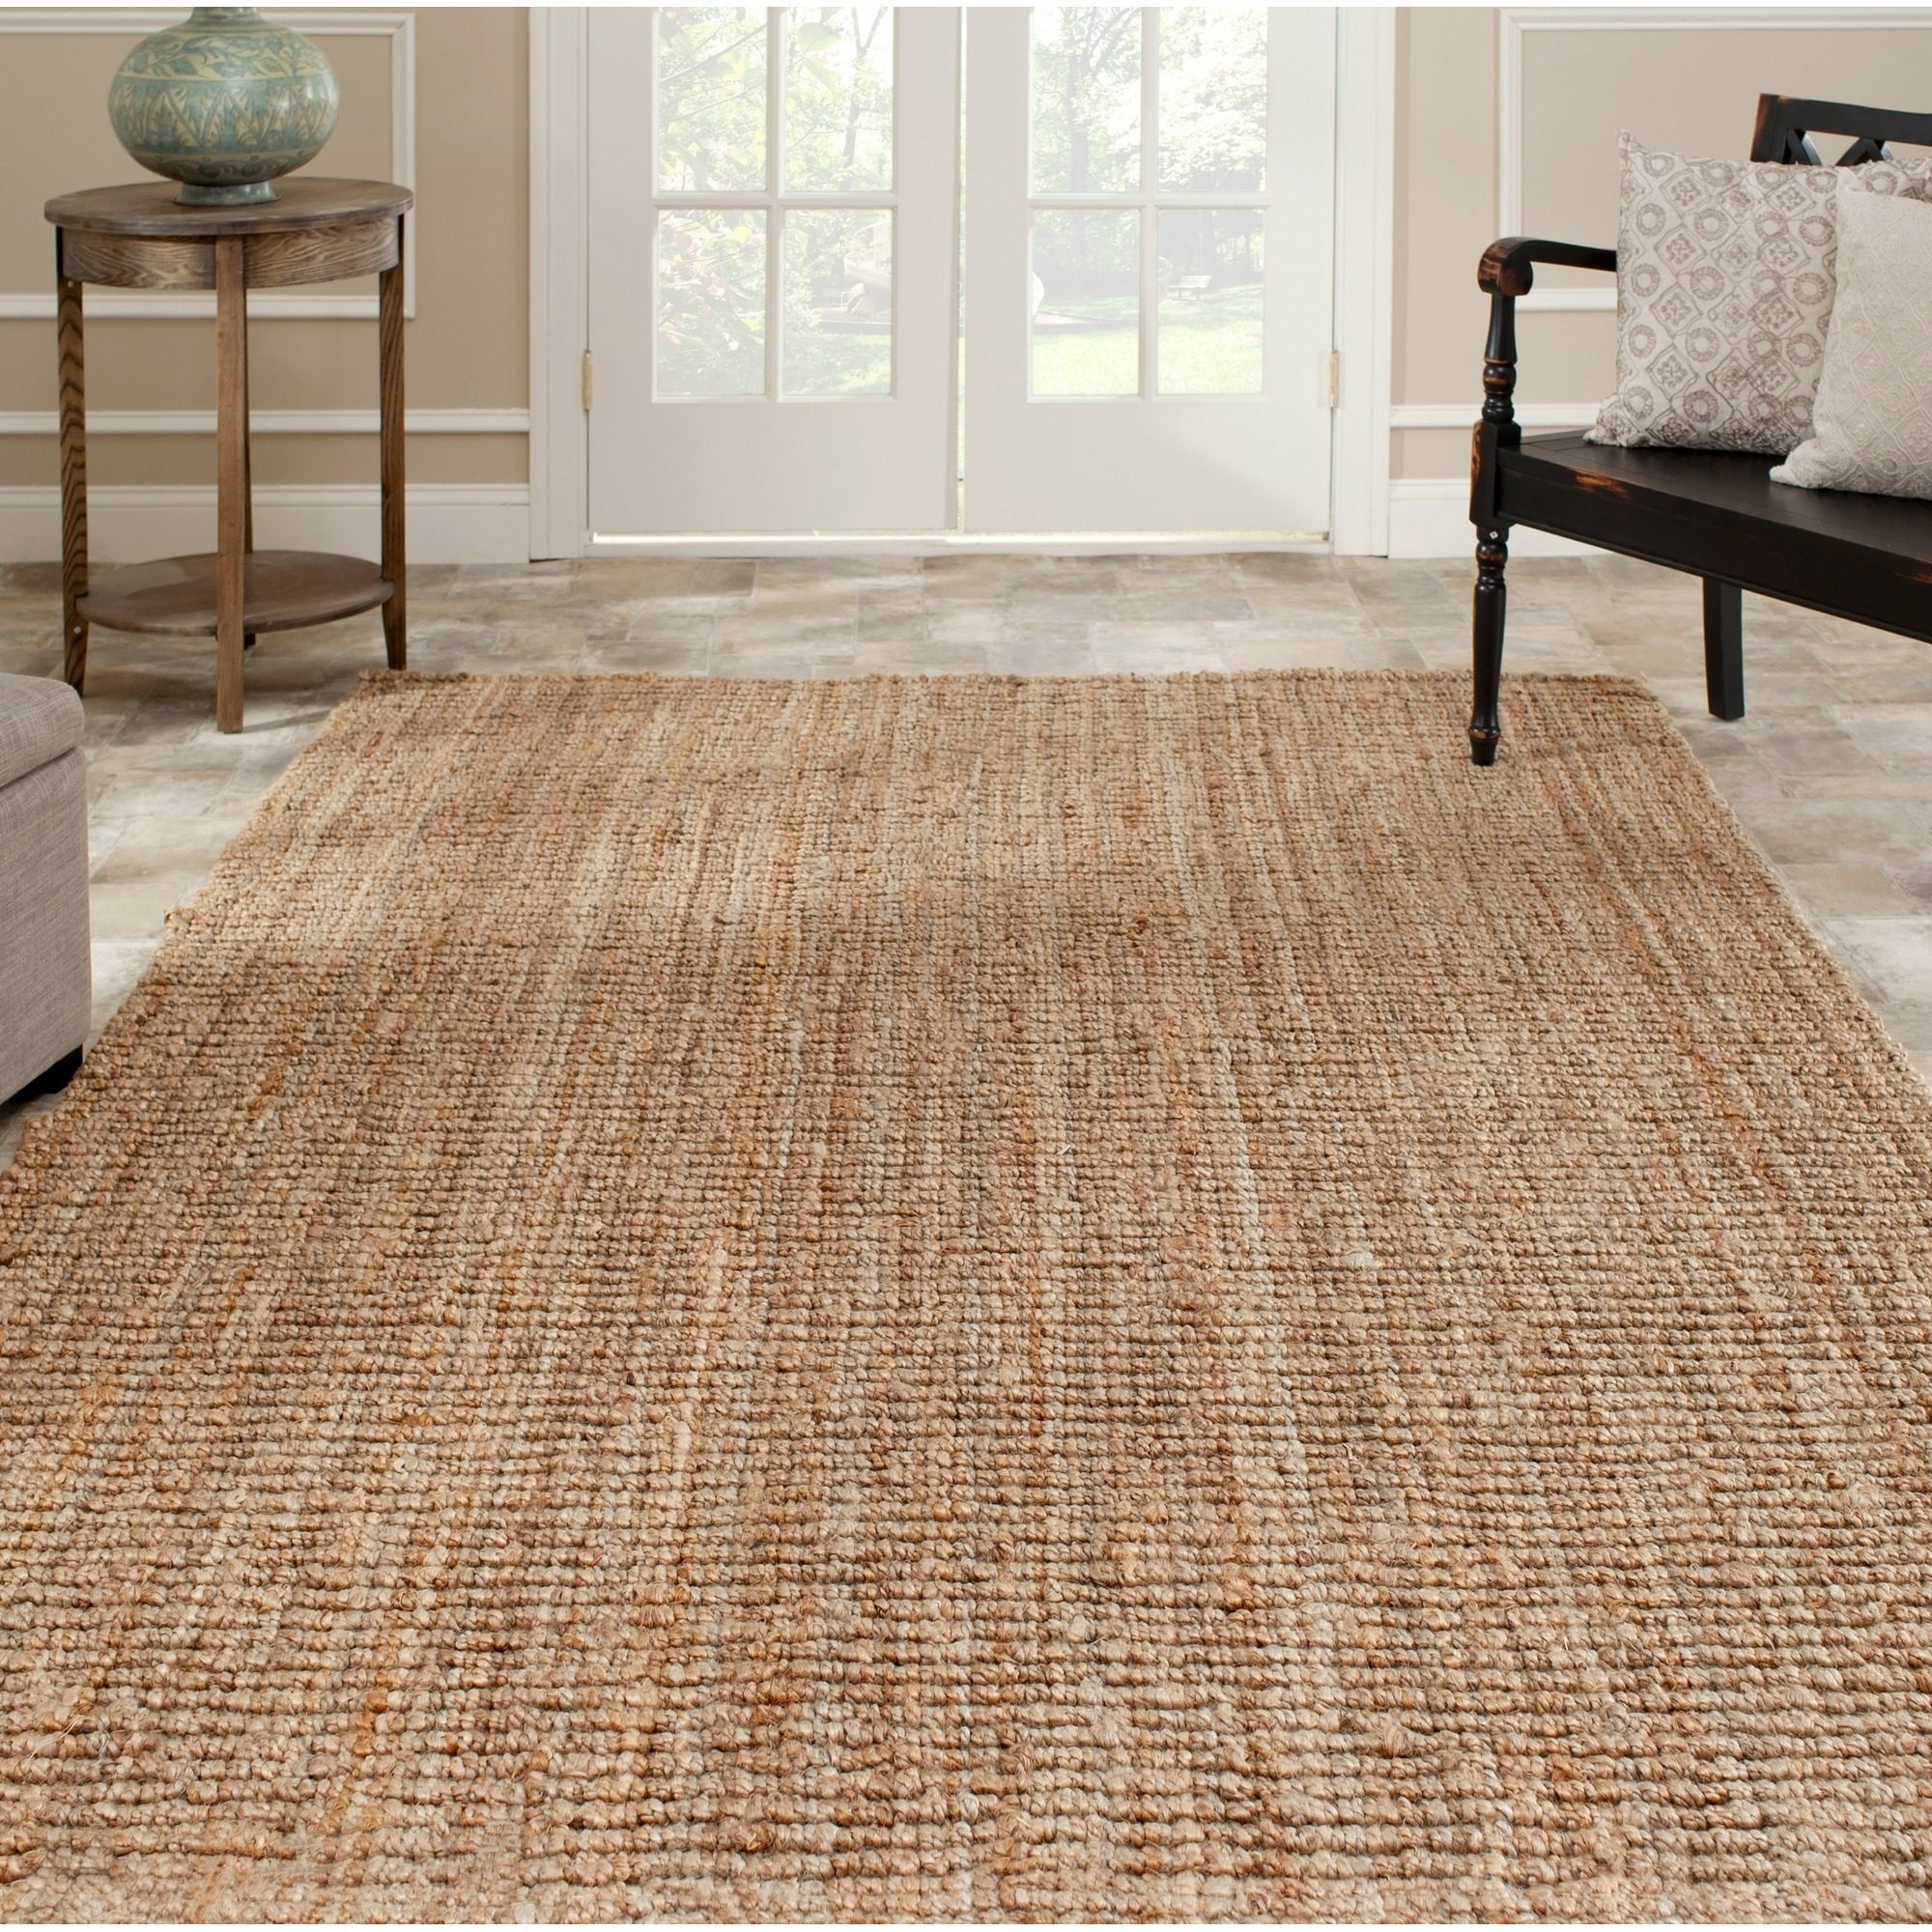 Rectangular Sisal Rug Ikea Natural Stone Floor Living Room Wooden Furniture Decorative Blue Vas